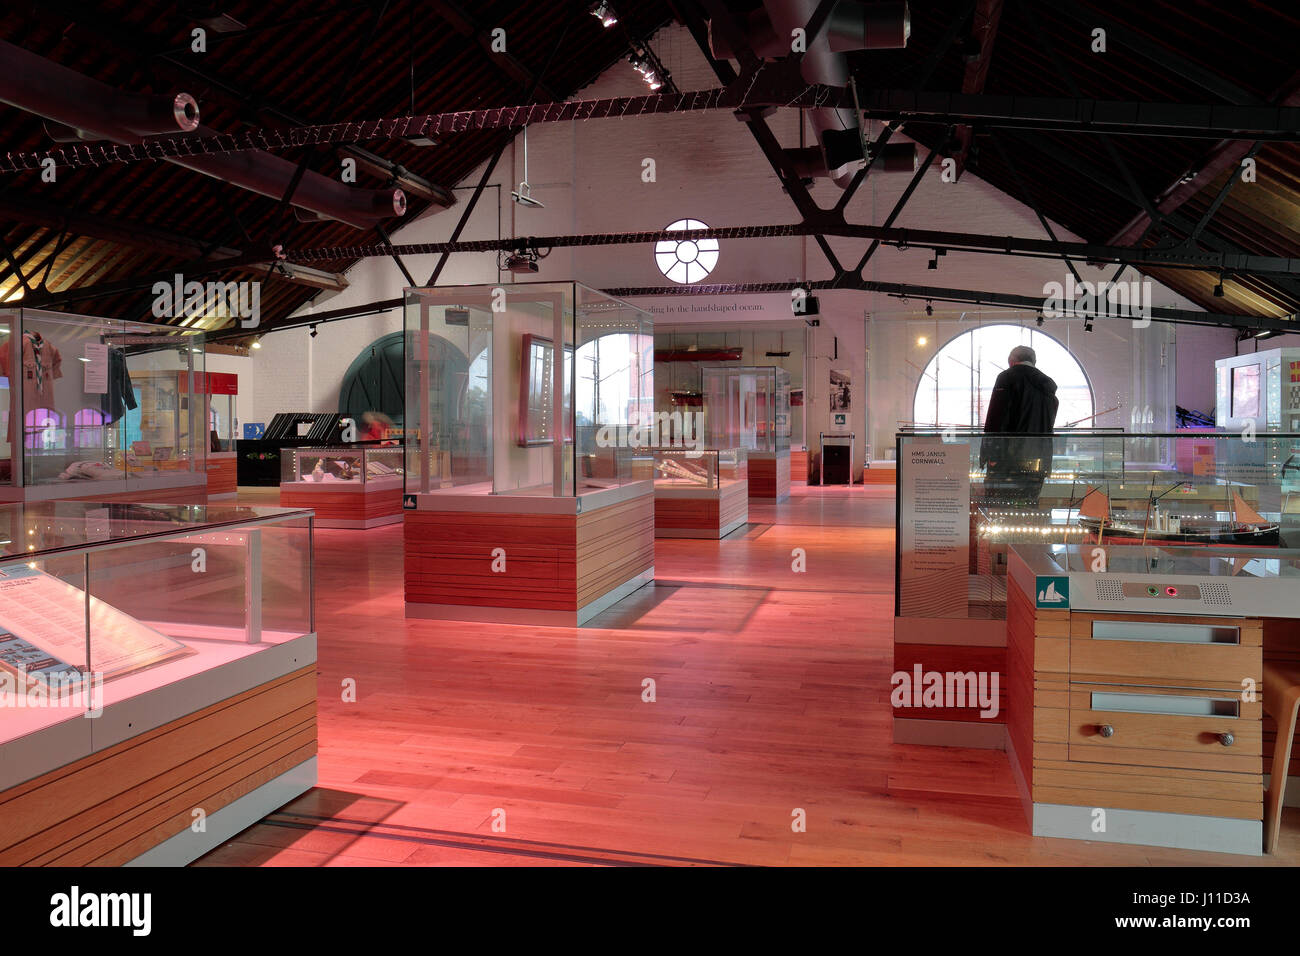 General view of exhibition displays in the National Waterfront Museum, Swansea, Wales. - Stock Image